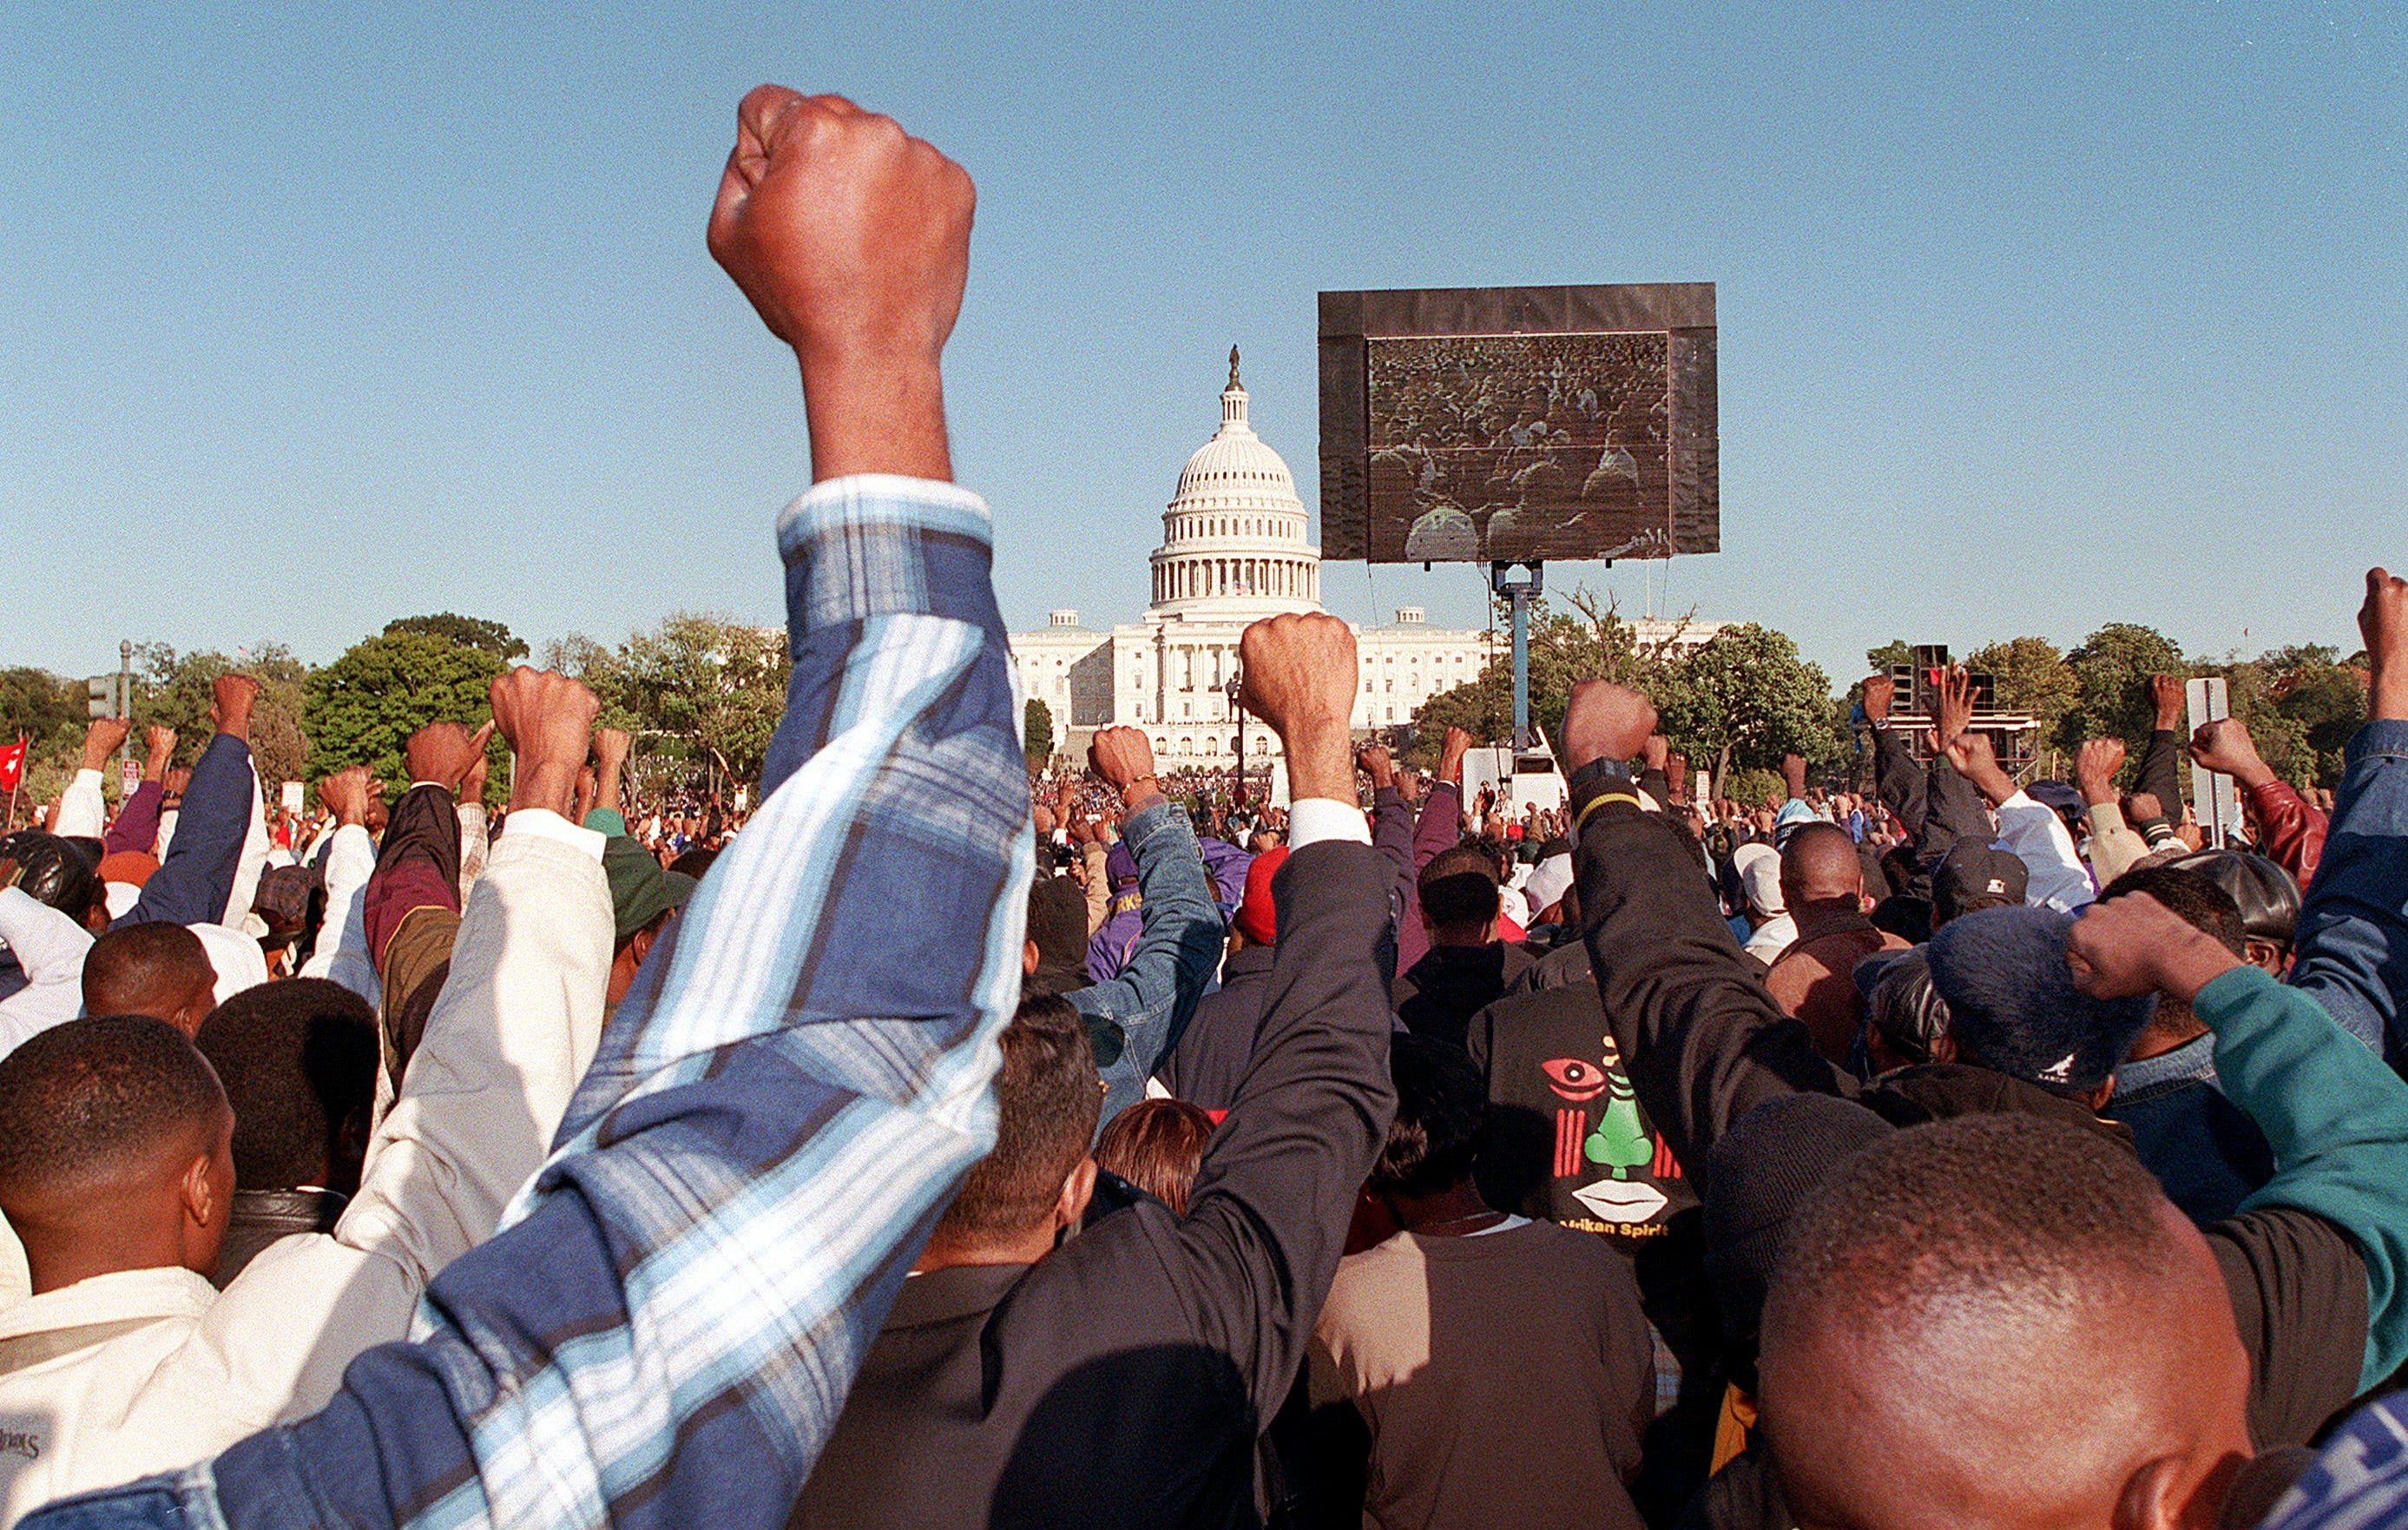 View of the mall during the Million Man March in Washington, D.C.